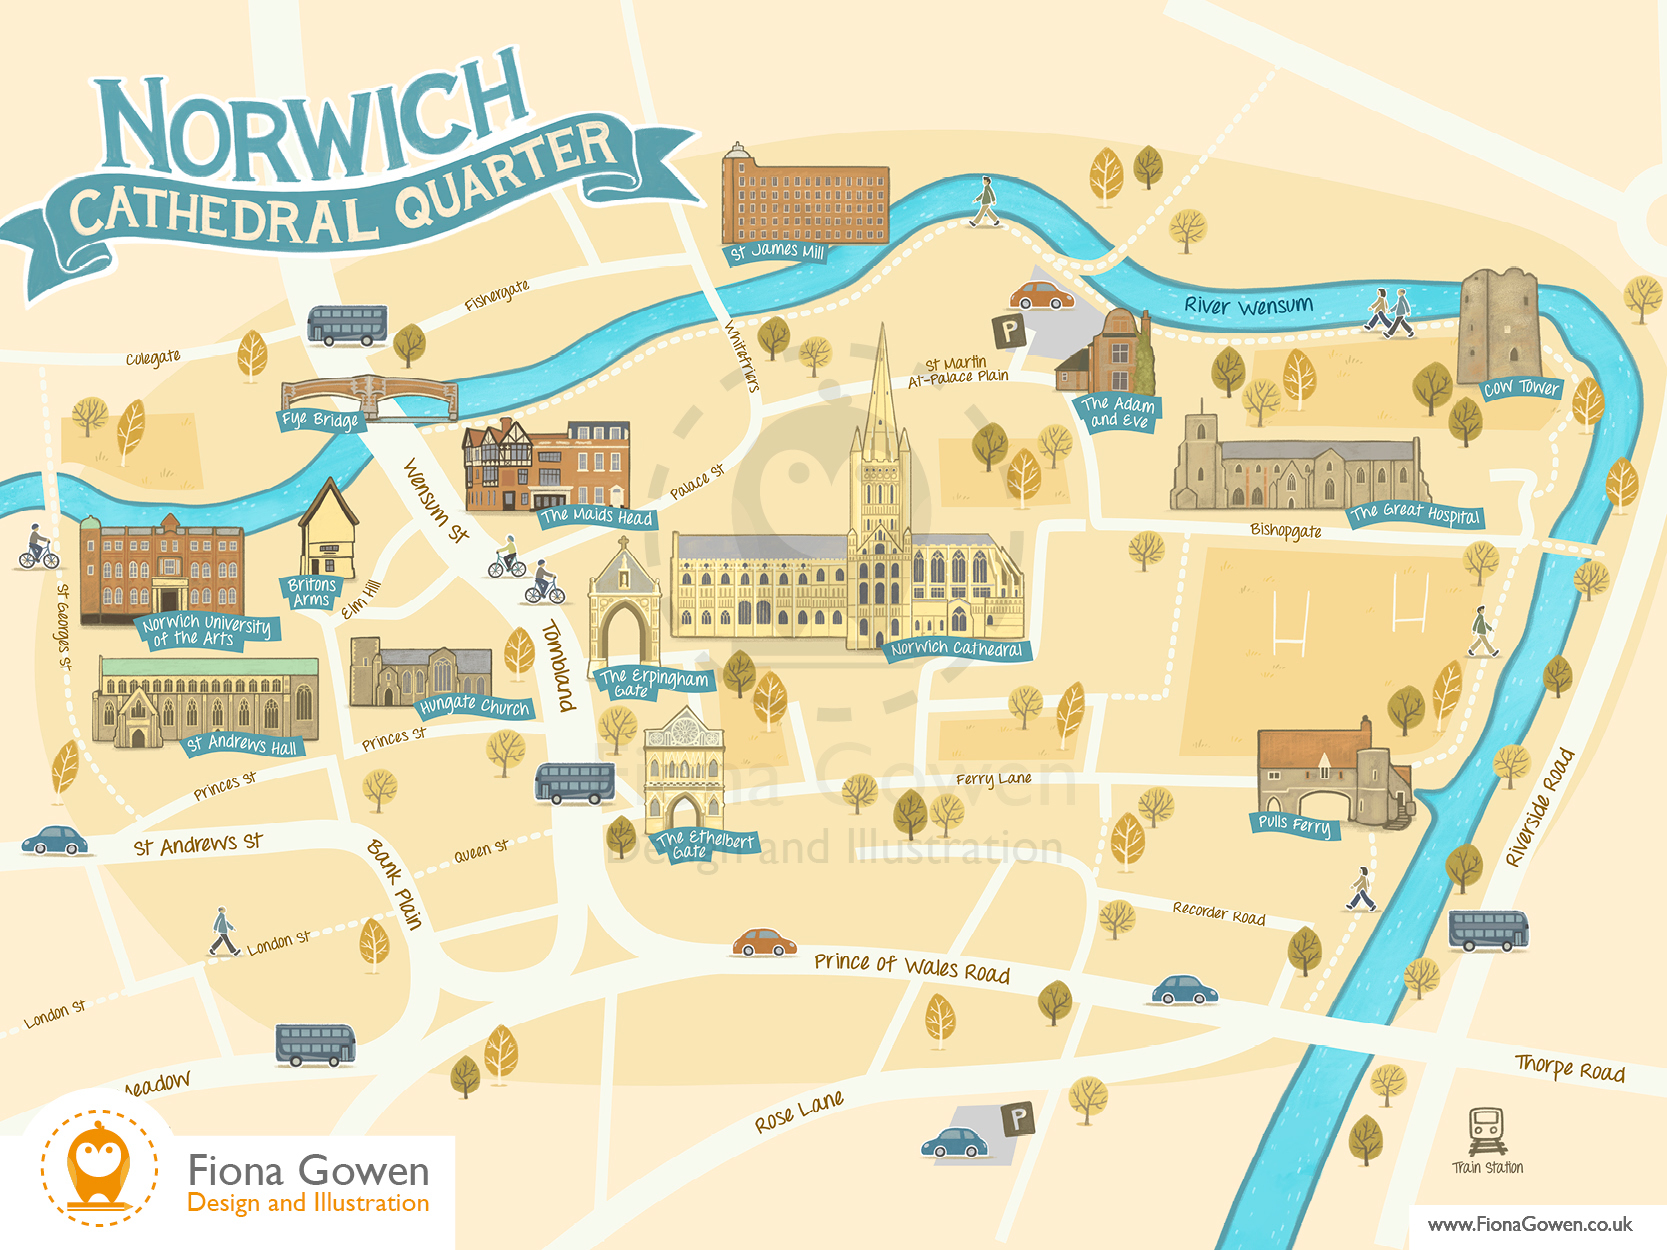 Illustrated map of Norwich Cathedral Quarter Norfolk, showing key buildings such as norwich Cathedral, St Andrews Hall, Pulls Ferry and the Adam and Eve Pub by map illustrator Fiona Gowen